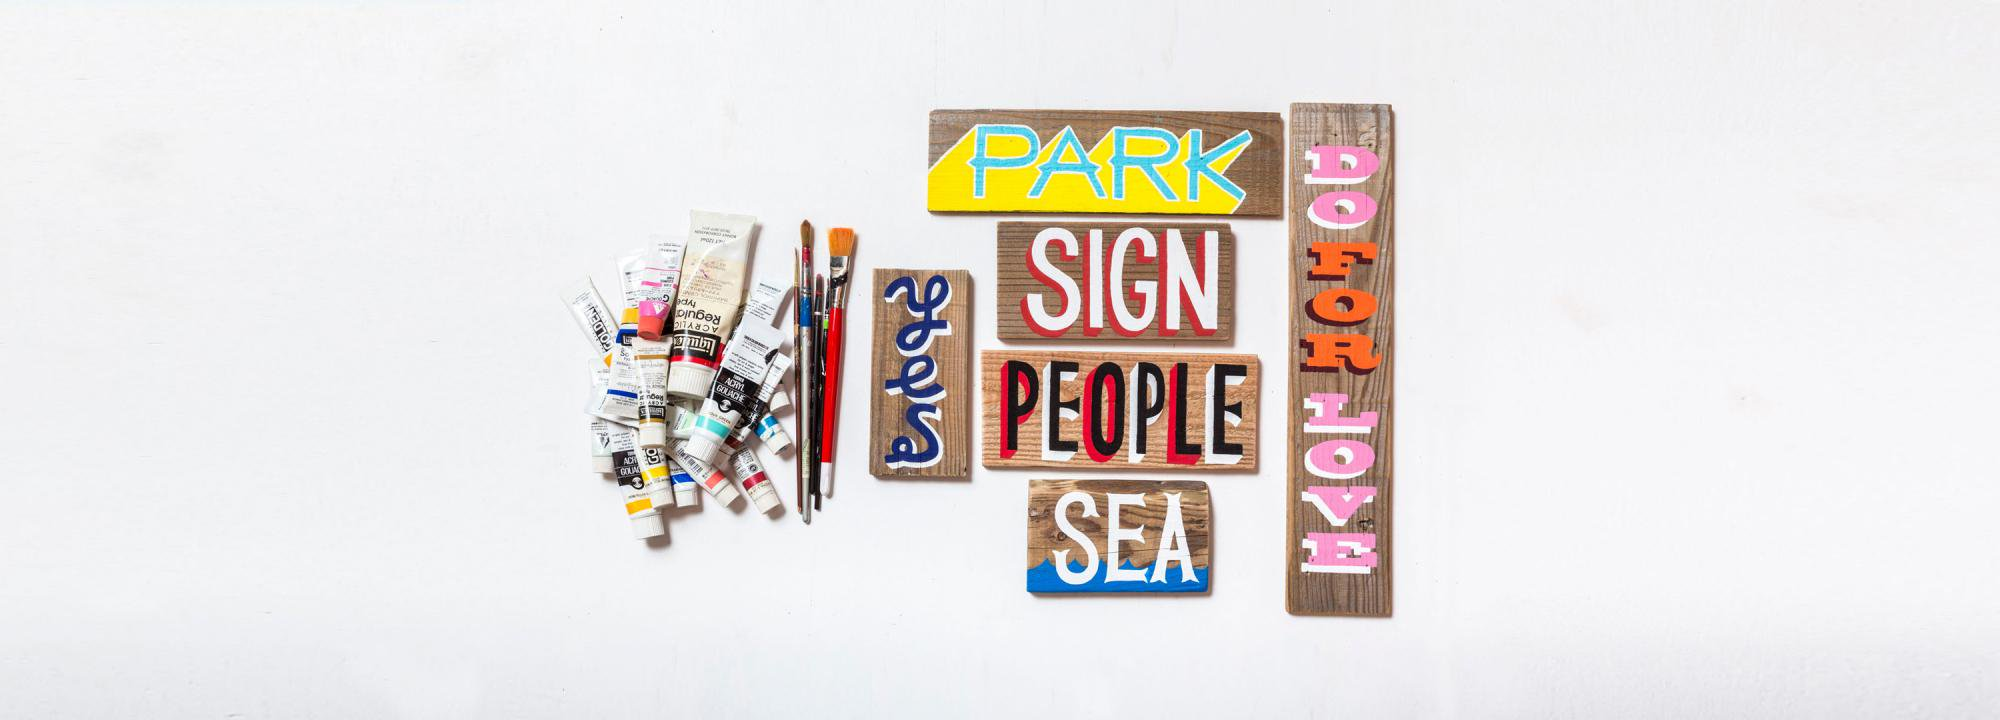 Sign Painting - PARK